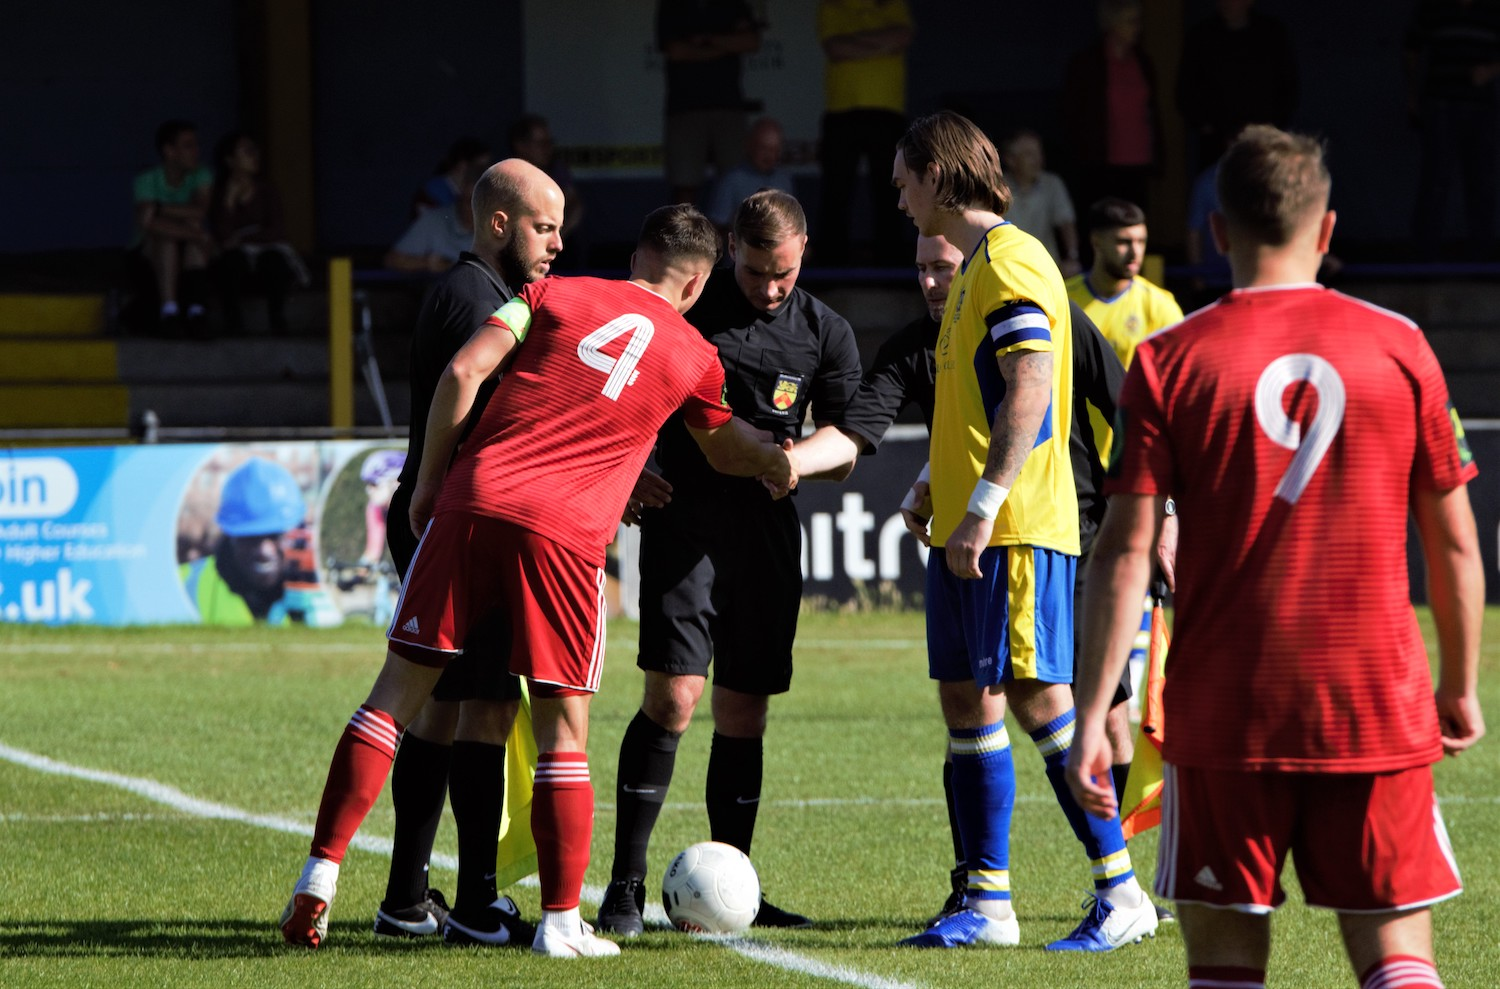 Read the full article - Reds clash with Saints in cup replay for a trip to Weymouth